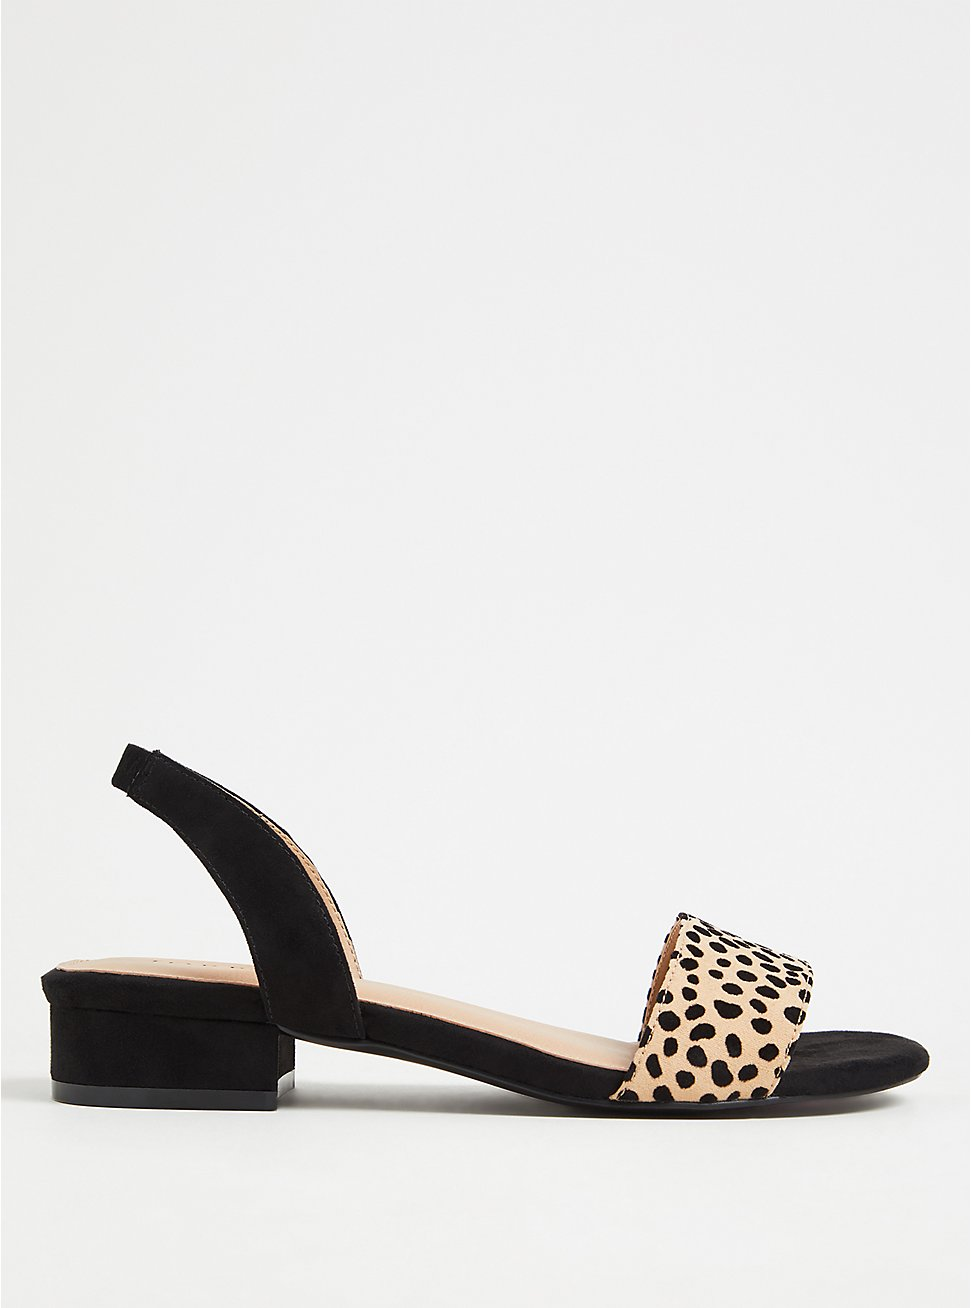 Black & Leopard Low Heel Slingback (WW), ANIMAL, hi-res